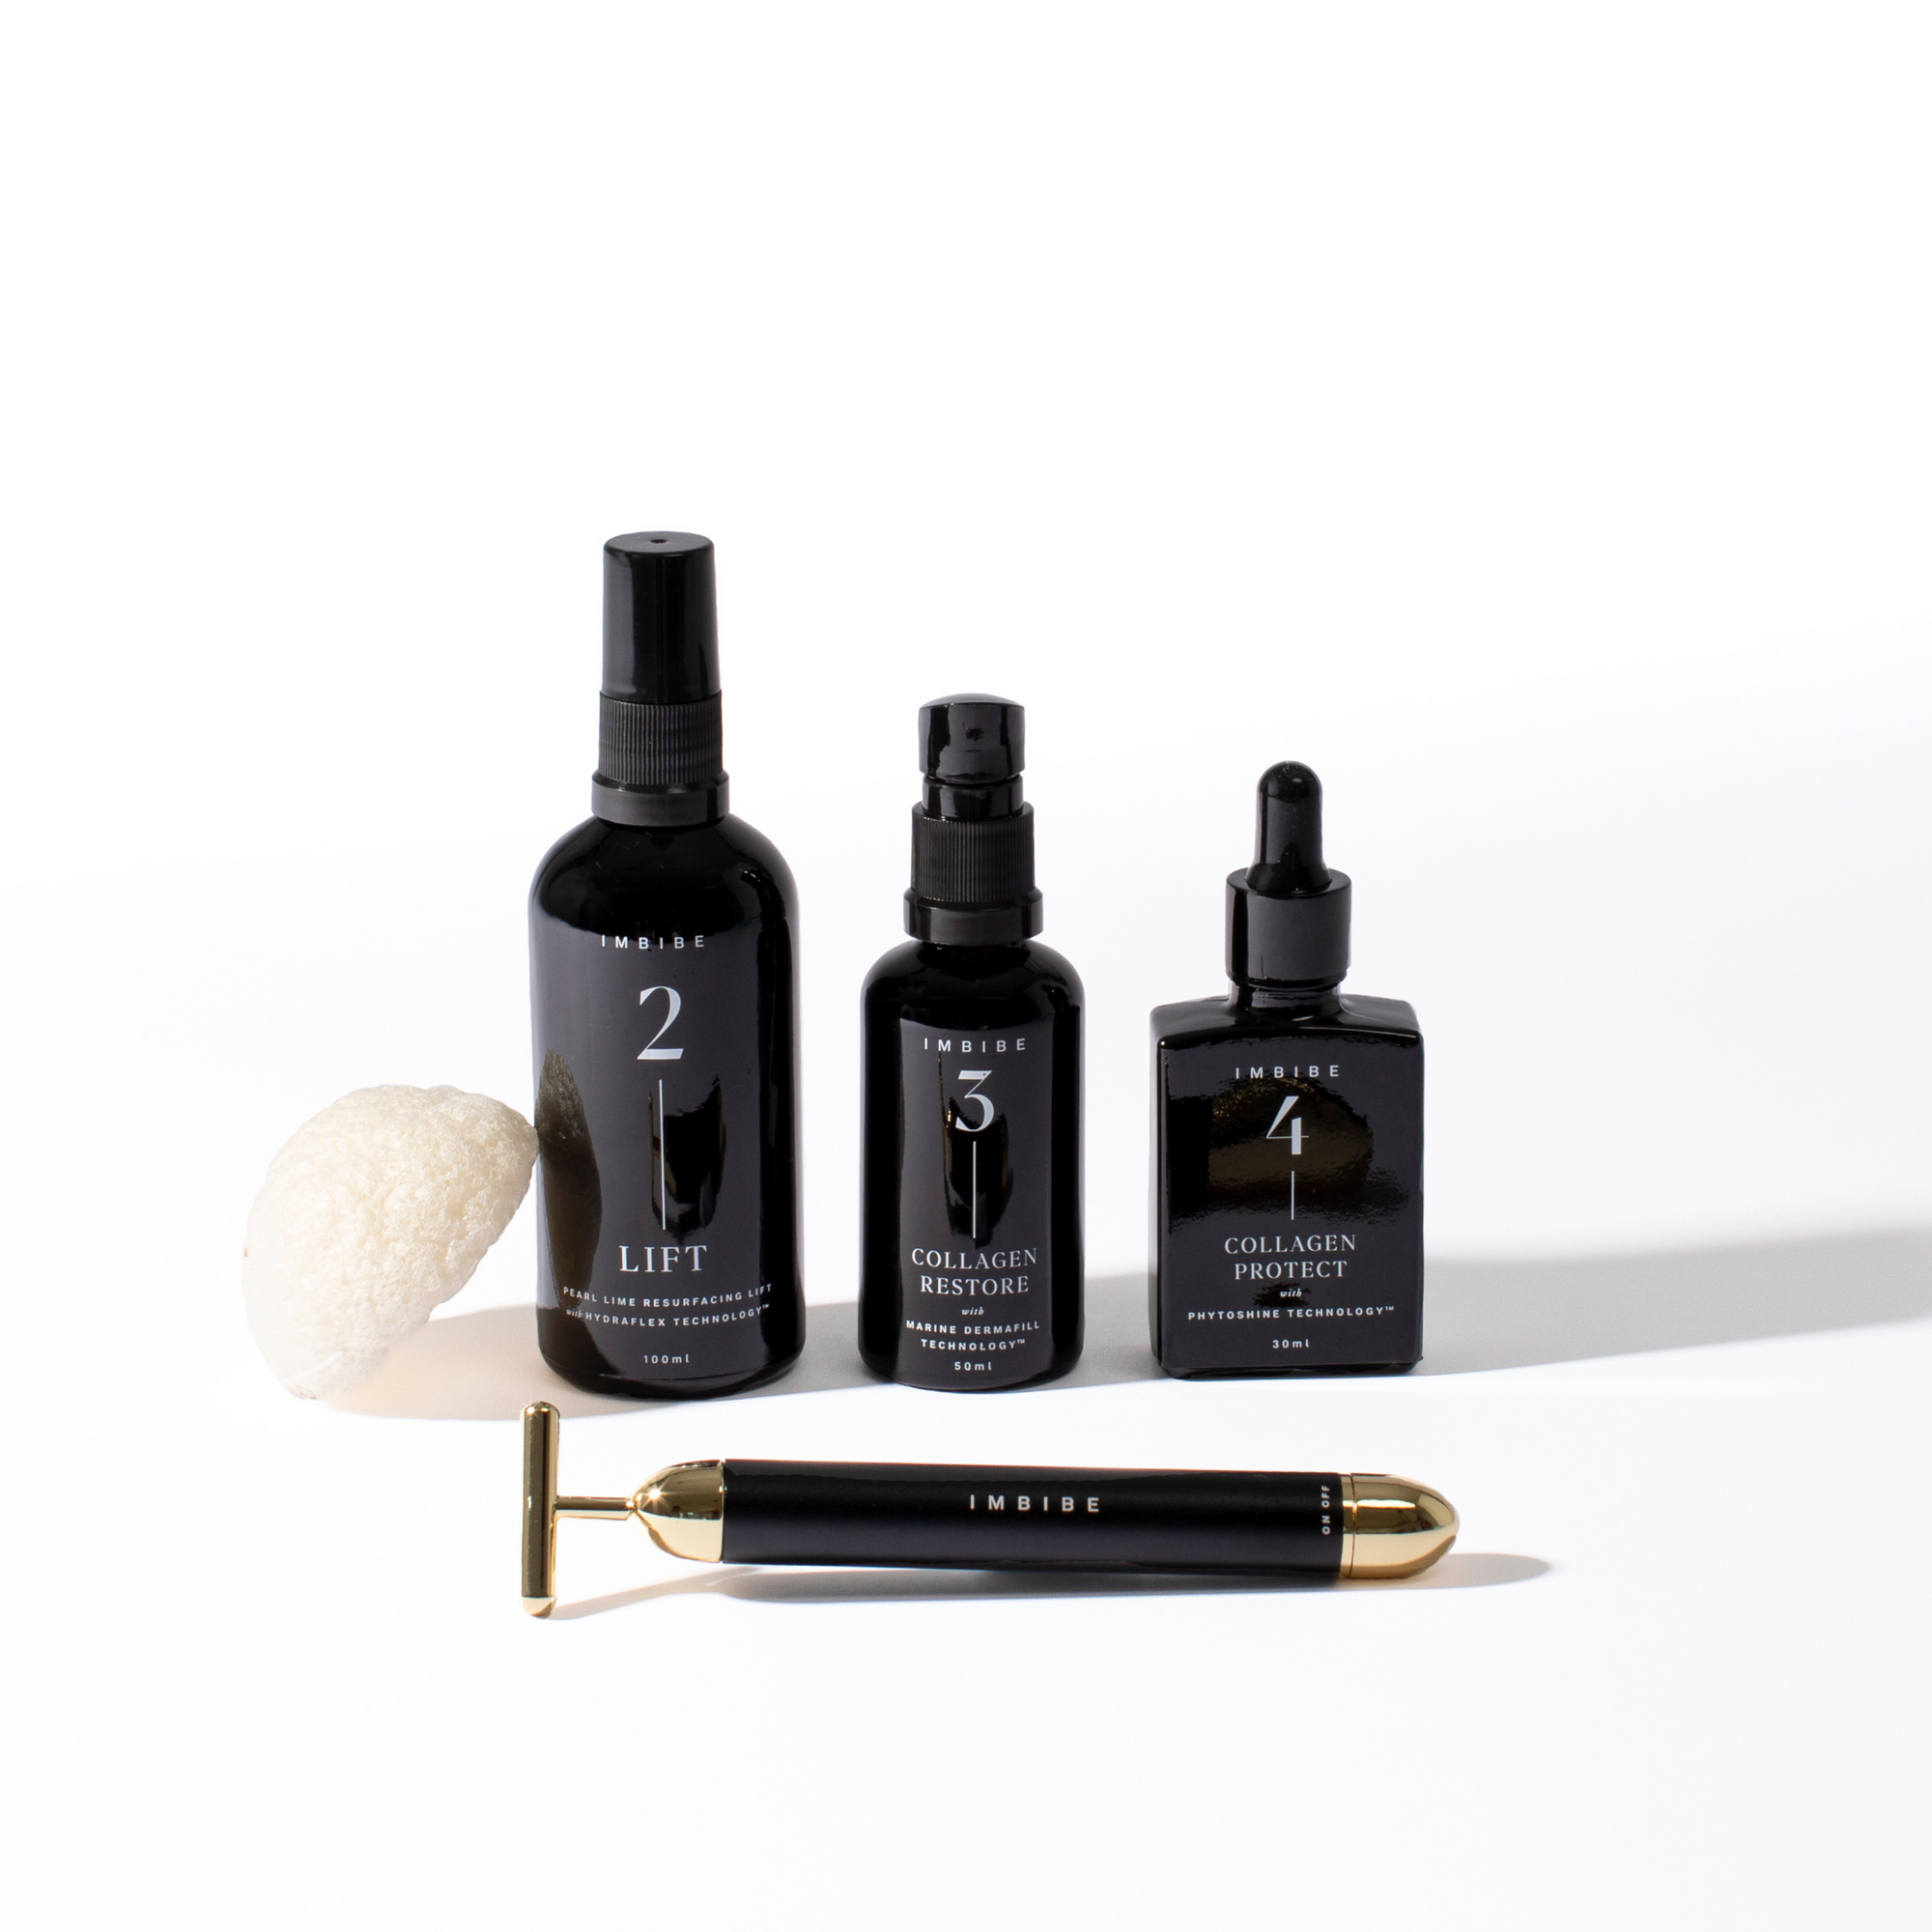 This 5 step skincare kit from Imbibe is active ingredient-packed to resurface skin and stimulate collagen production. Official Imbibe stockist. Afterpay It.